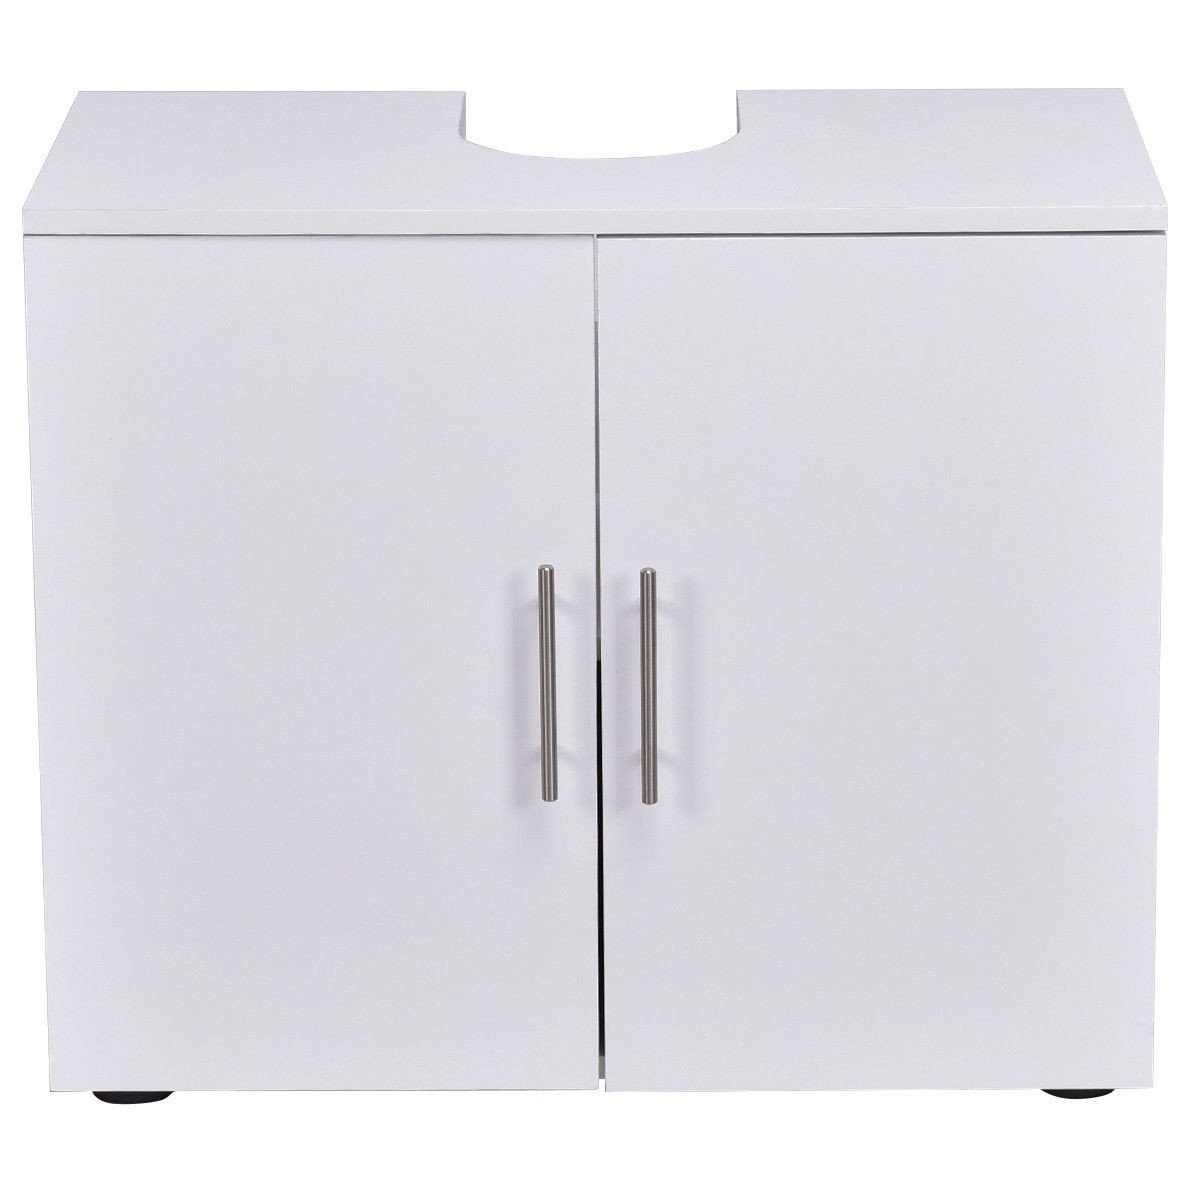 Storage Vanity Cabinet Bathroom Non Pedestal Under Sink Wall Mounted White Wood Furniture MD Group by MD Group (Image #4)